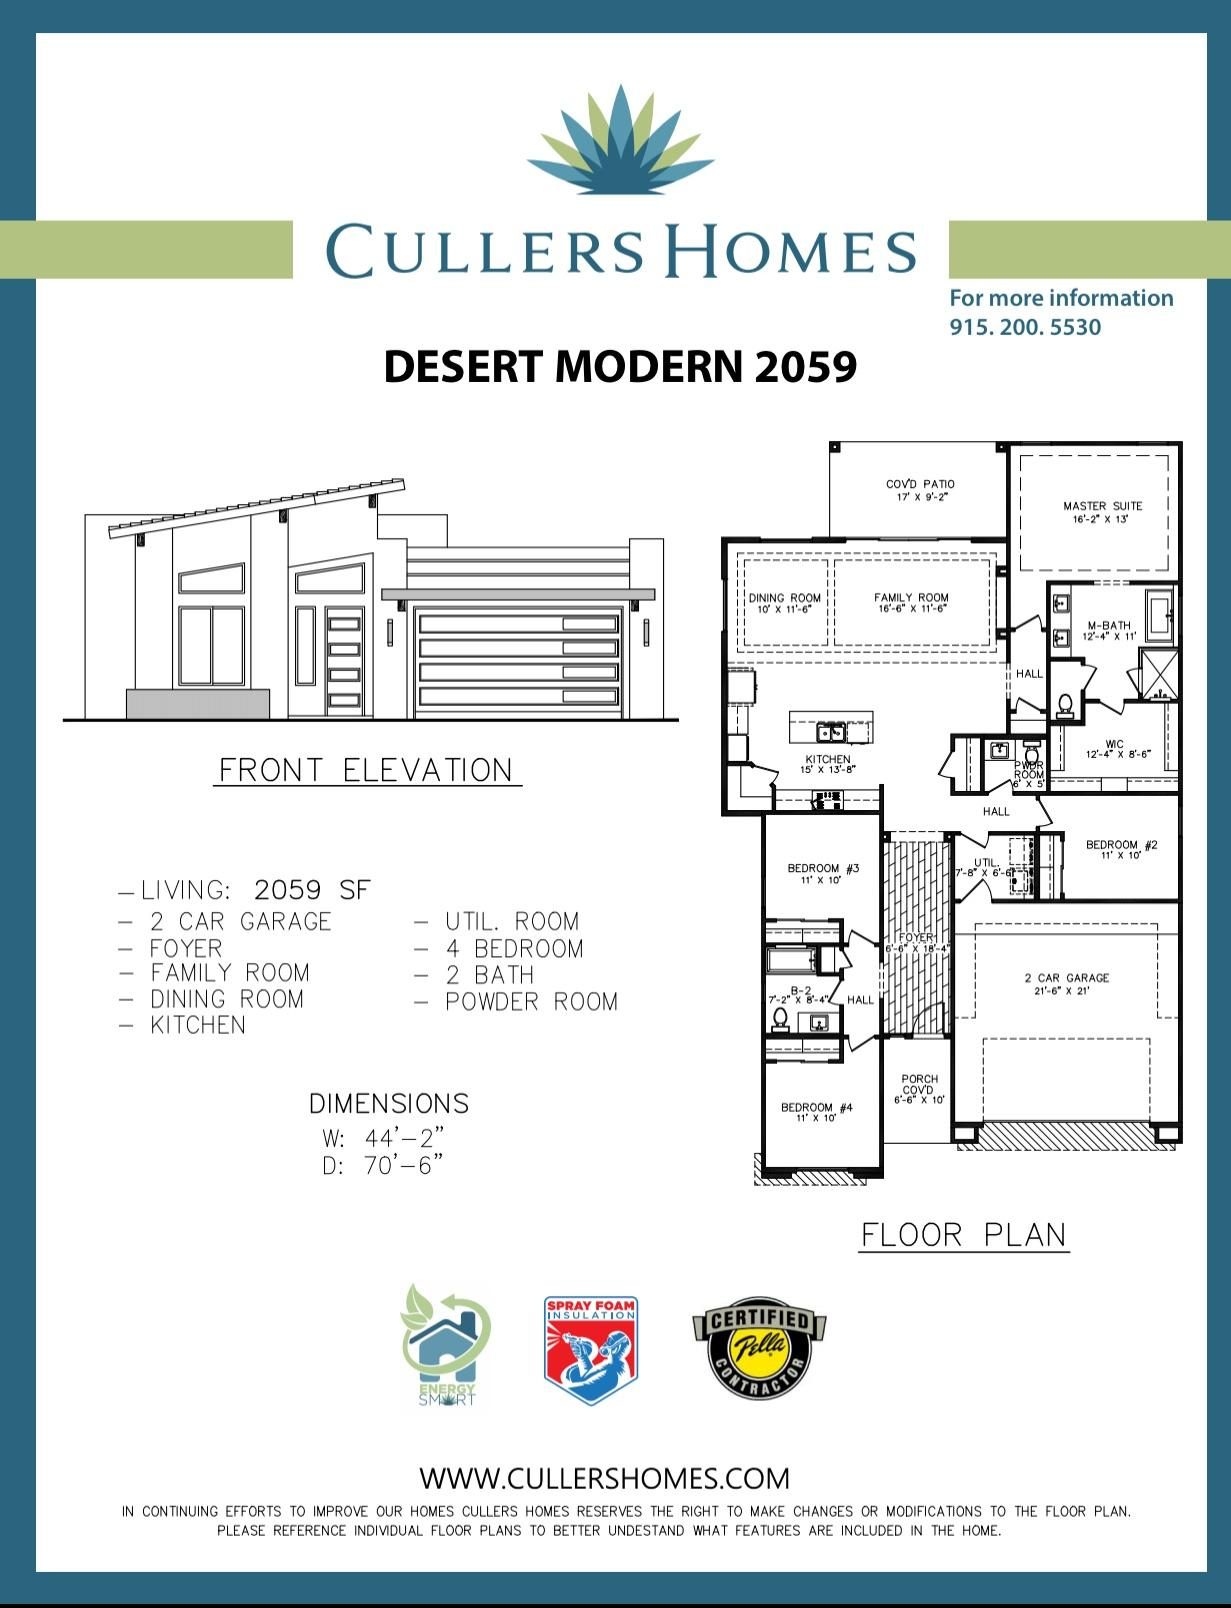 Available in the brand new Community at Cimarron Canyon!  Just off Resler and Northern Pass!A beautiful custom by Cullers Homes. A DM 2059 Floor Plan on the west side of El Paso. Open concept with open design featuring 4 bedrooms and 2.5 Bathrooms. Cullers Homes energy advantage package is designed to reduce energy consumption by 40% exceeding energy star ratings! Easy access to 1-10 and Transmountain Rd. A must see! Call the listing agent for more details!